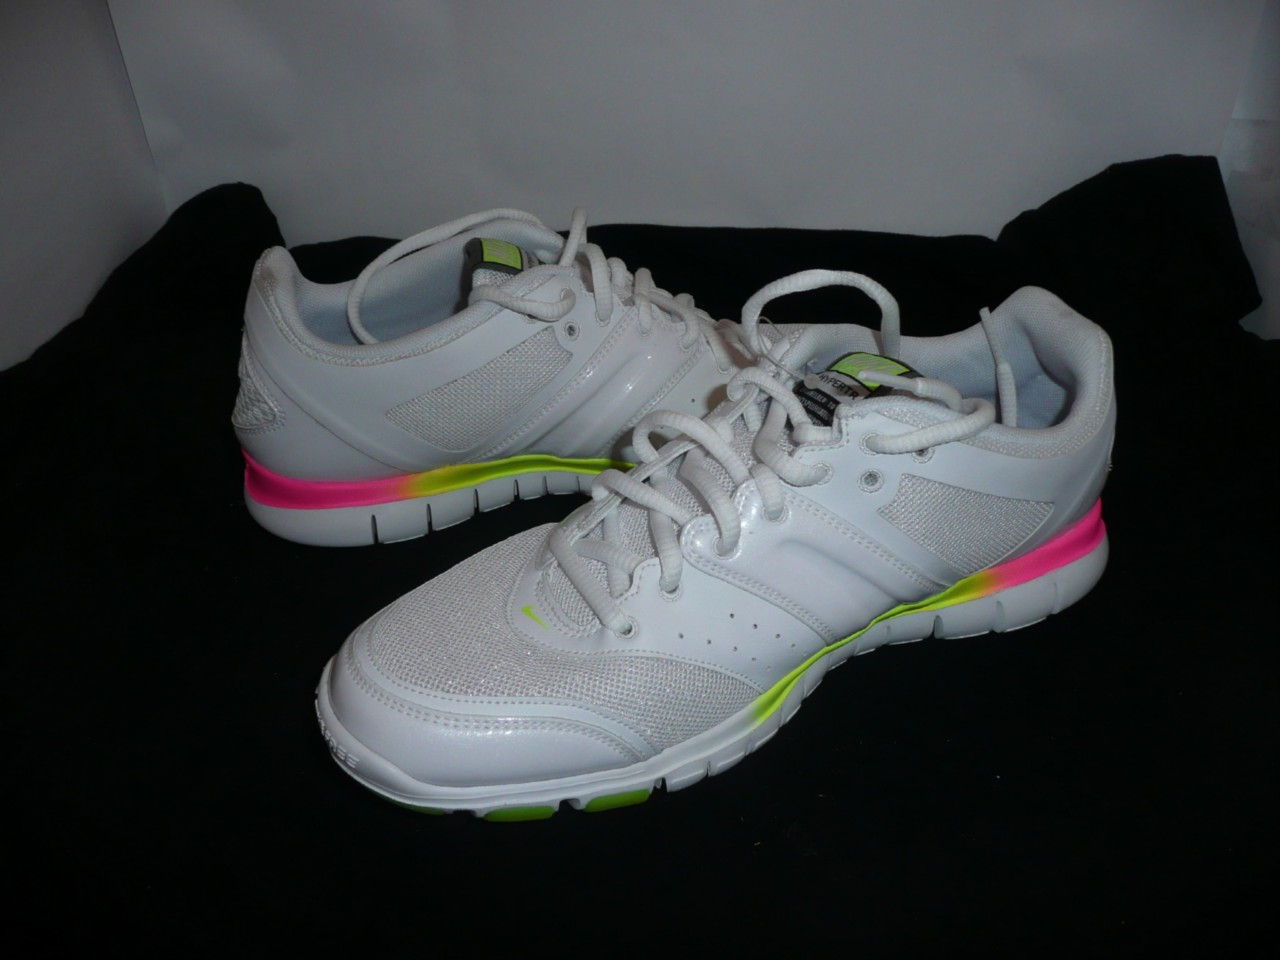 LADIES-NIKE-FREE-HYPER-TR-RUNNERS-WHITE-YELLOW-PINK-NEW